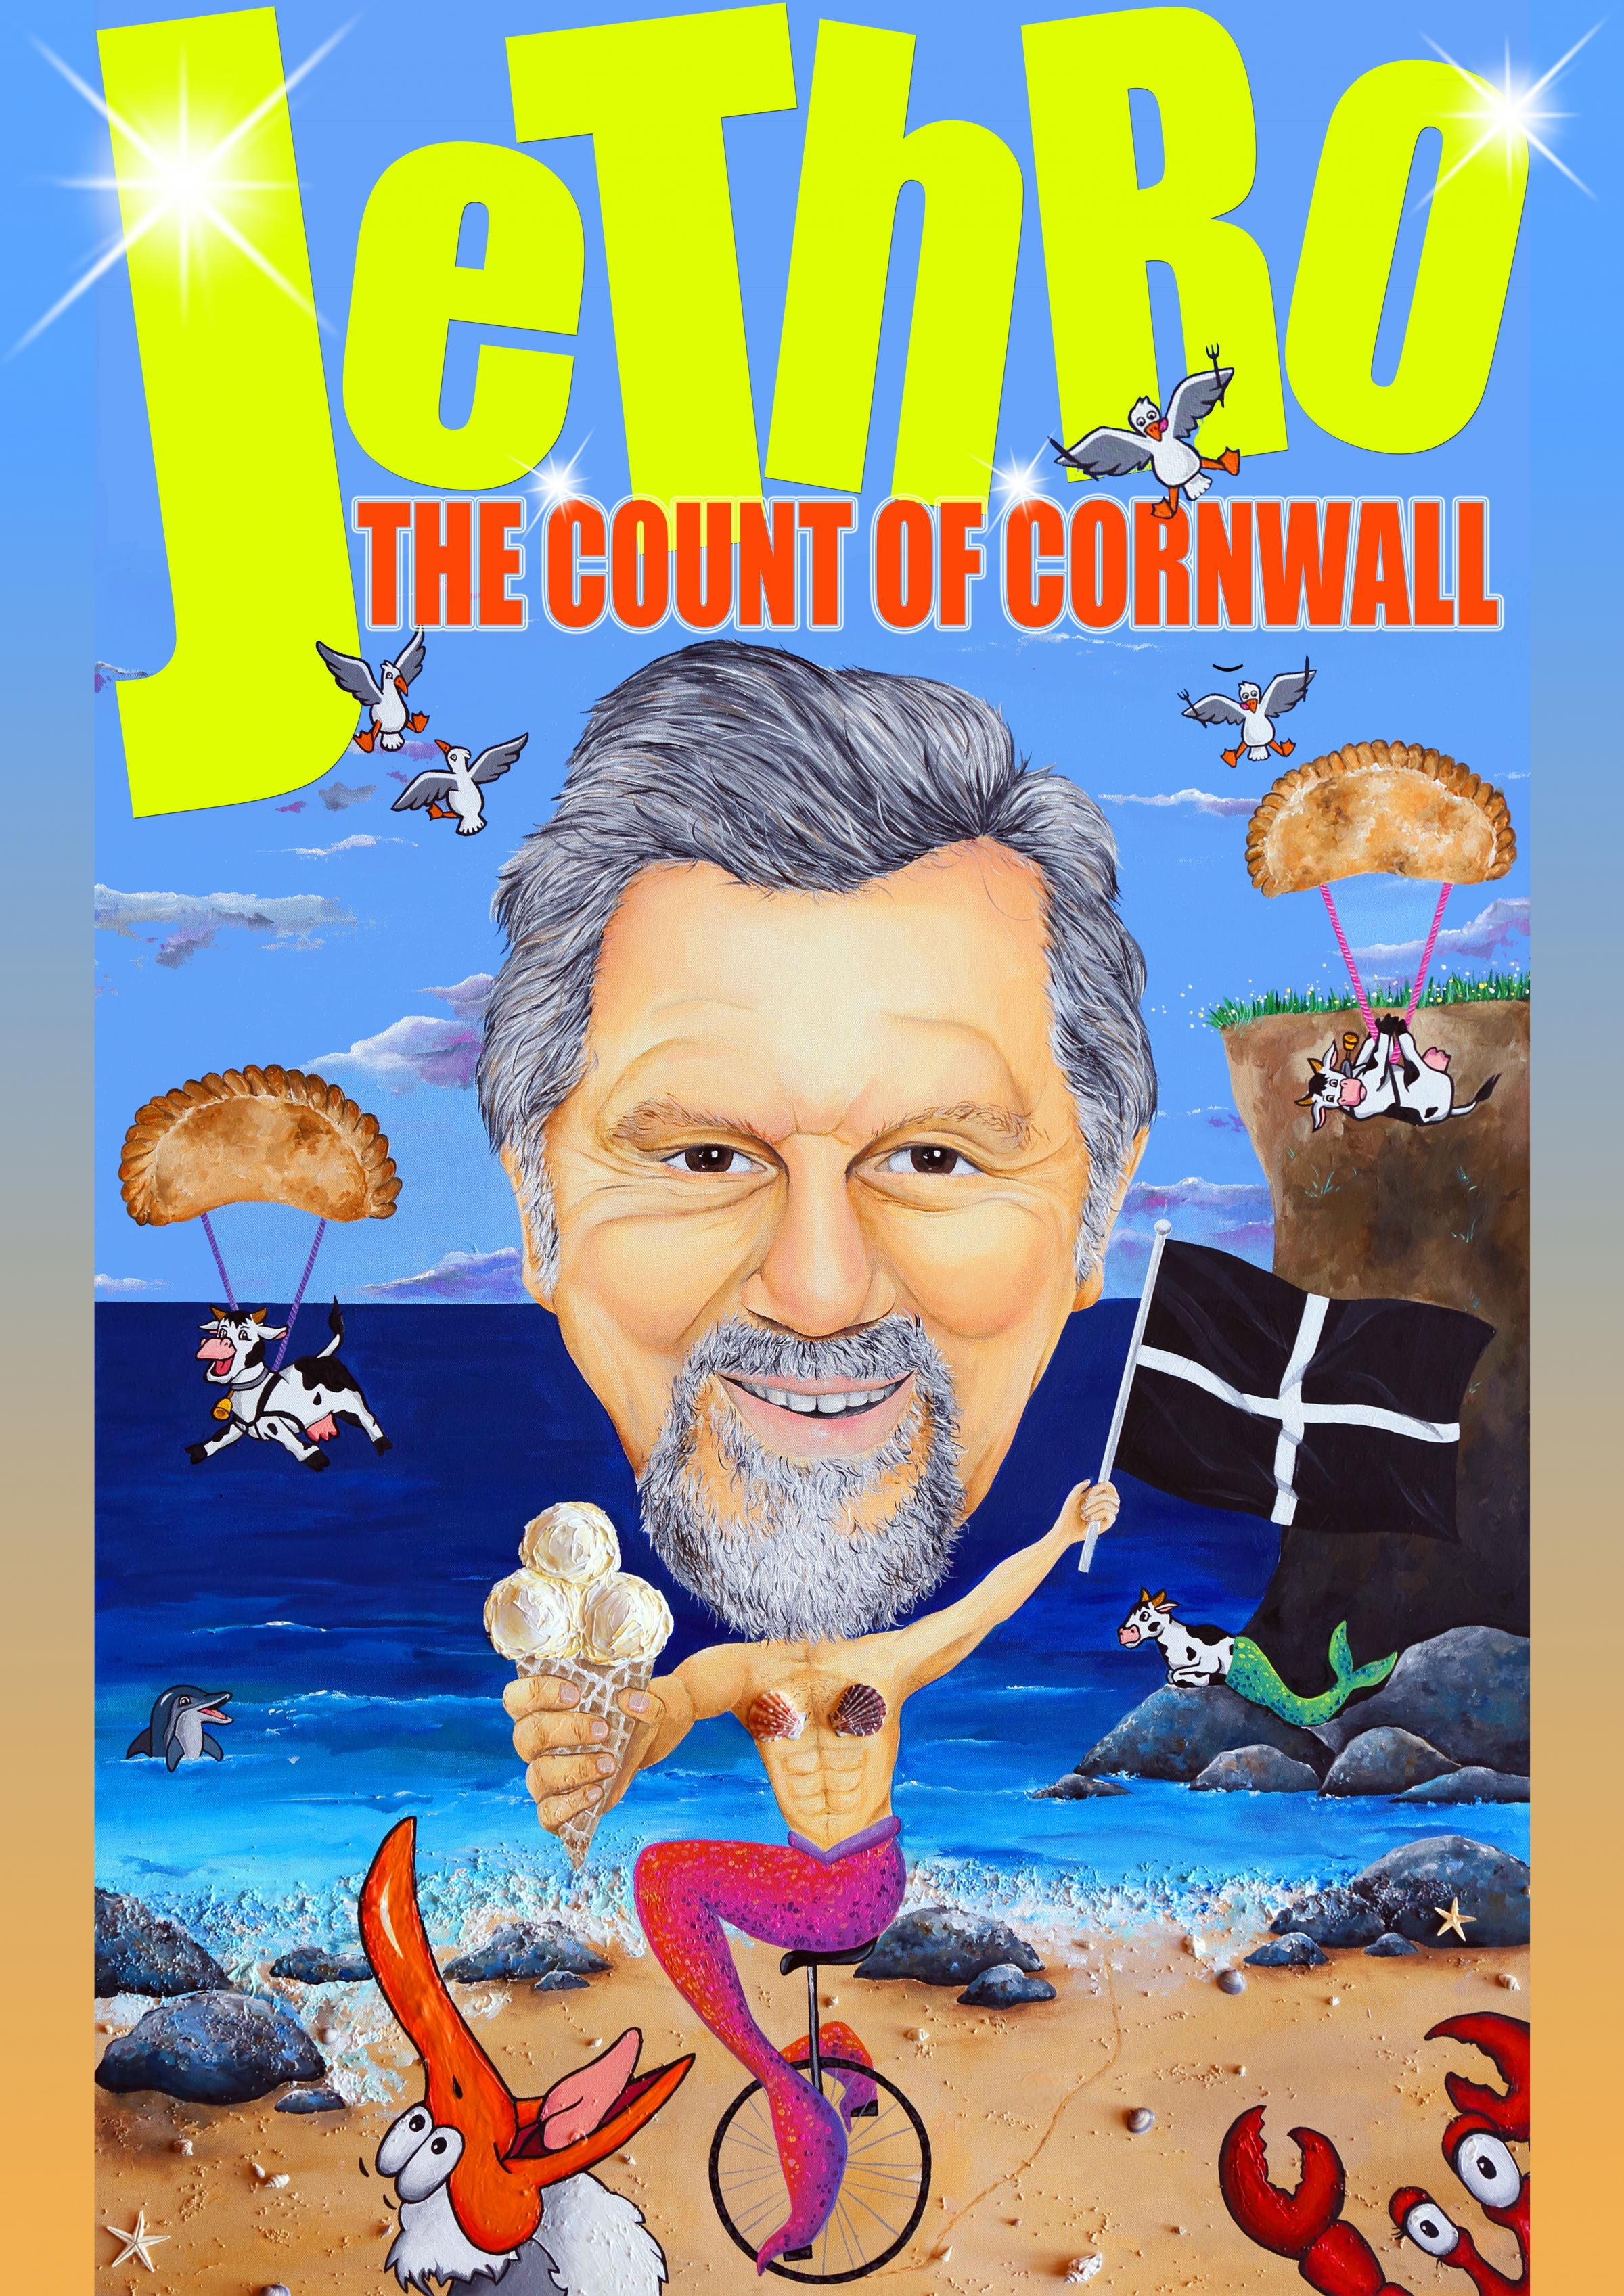 Jethro - The Count of Cornwall